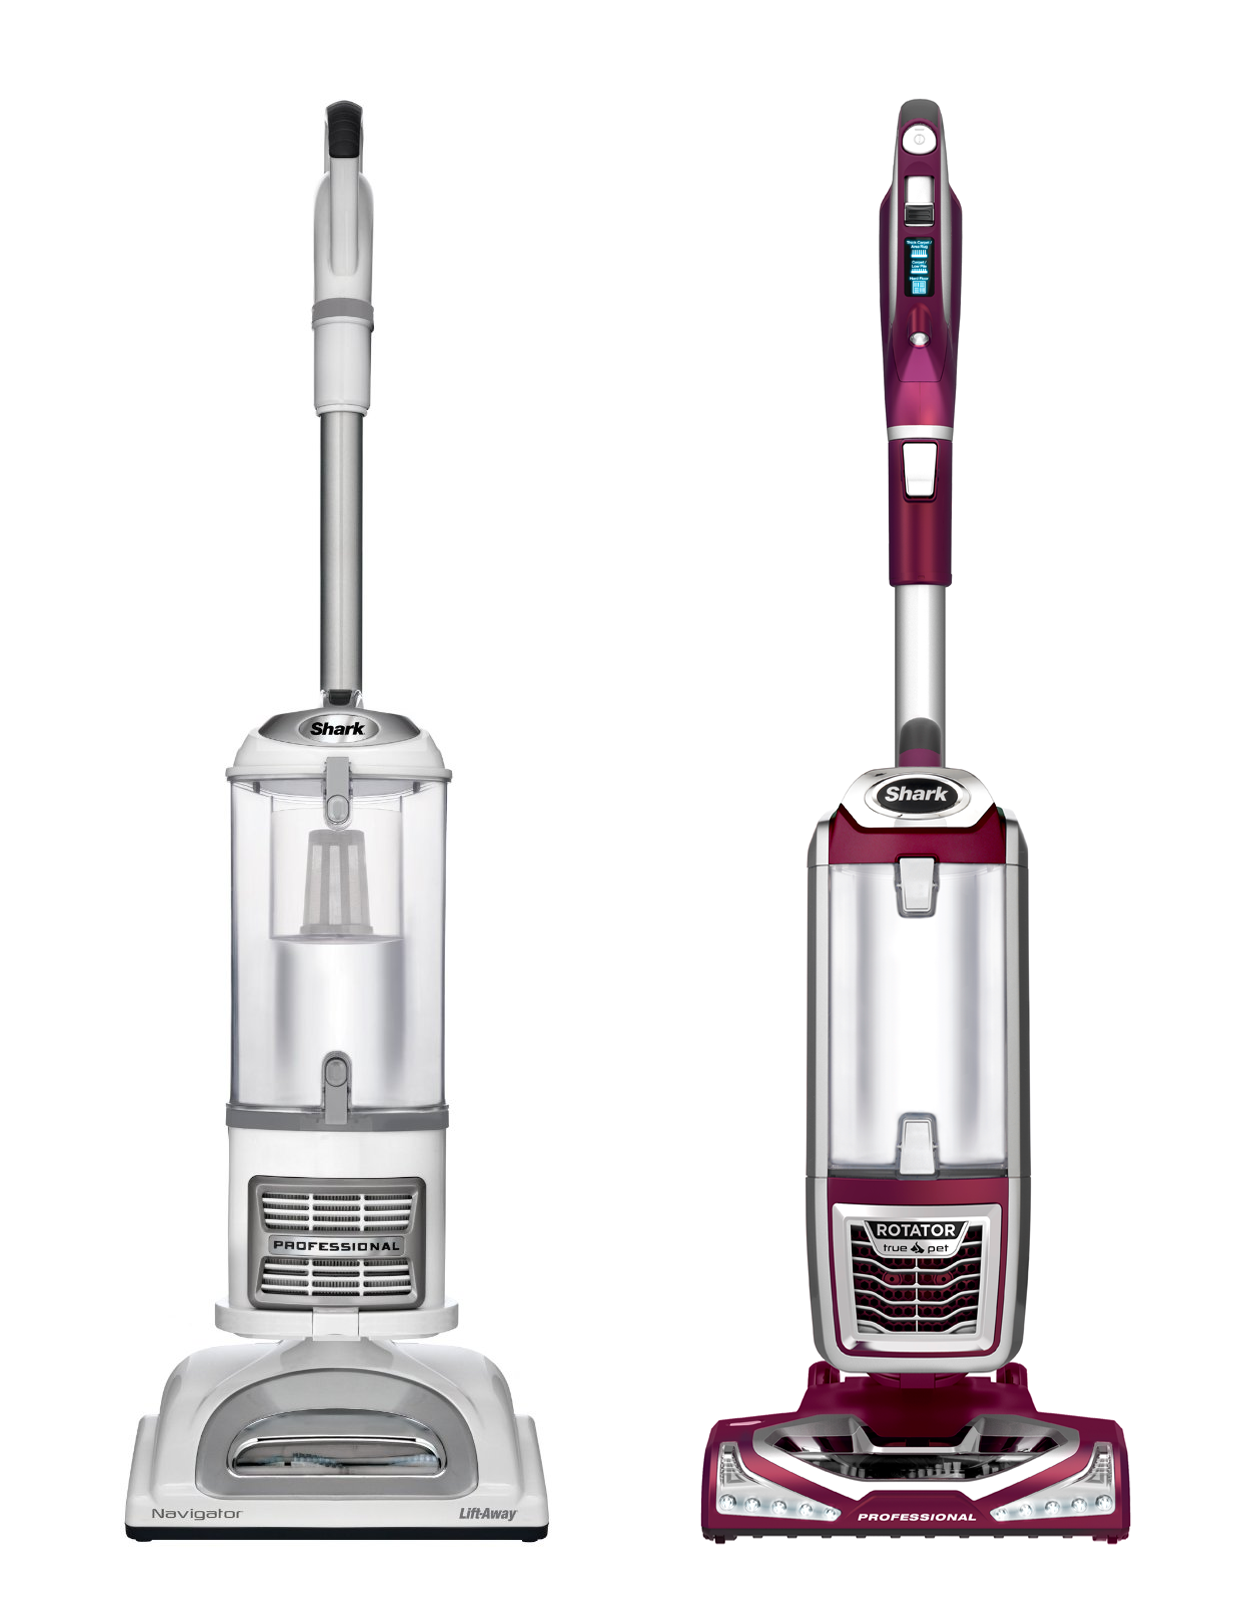 Shark Vacuum Comparison Chart Shark Navigator Vs Rotator